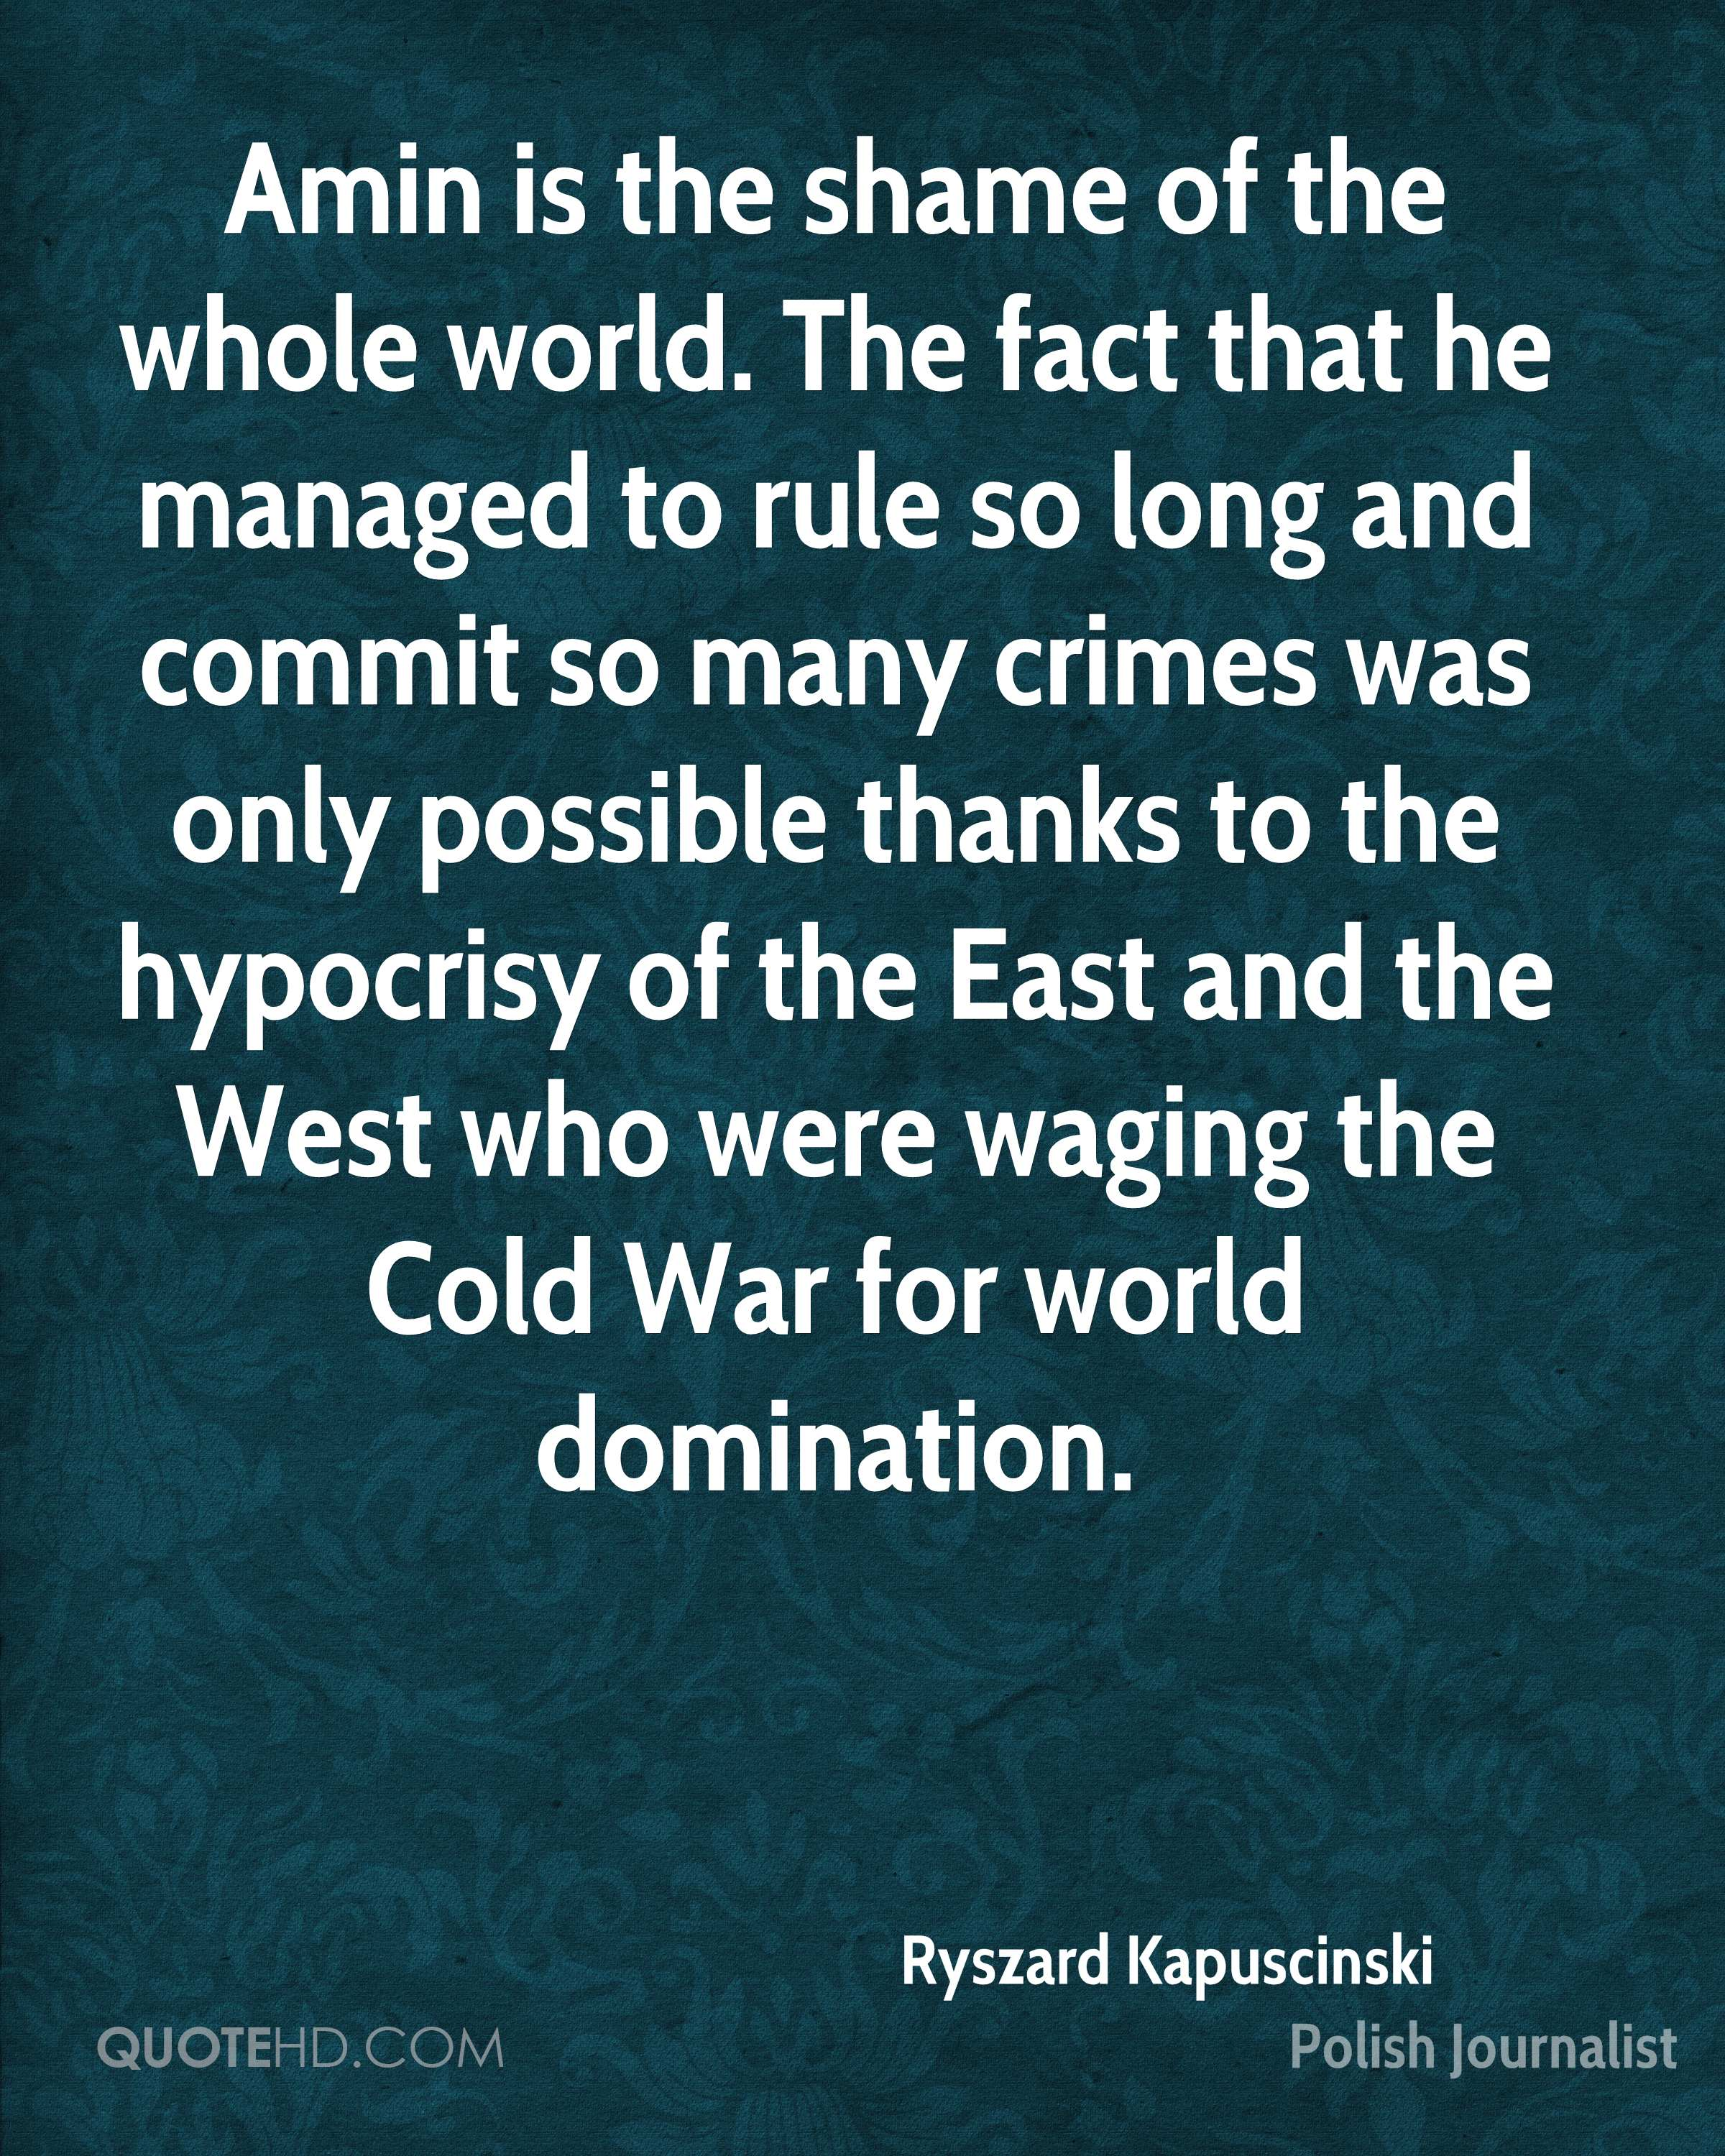 Amin is the shame of the whole world. The fact that he managed to rule so long and commit so many crimes was only possible thanks to the hypocrisy of the East and the West who were waging the Cold War for world domination.